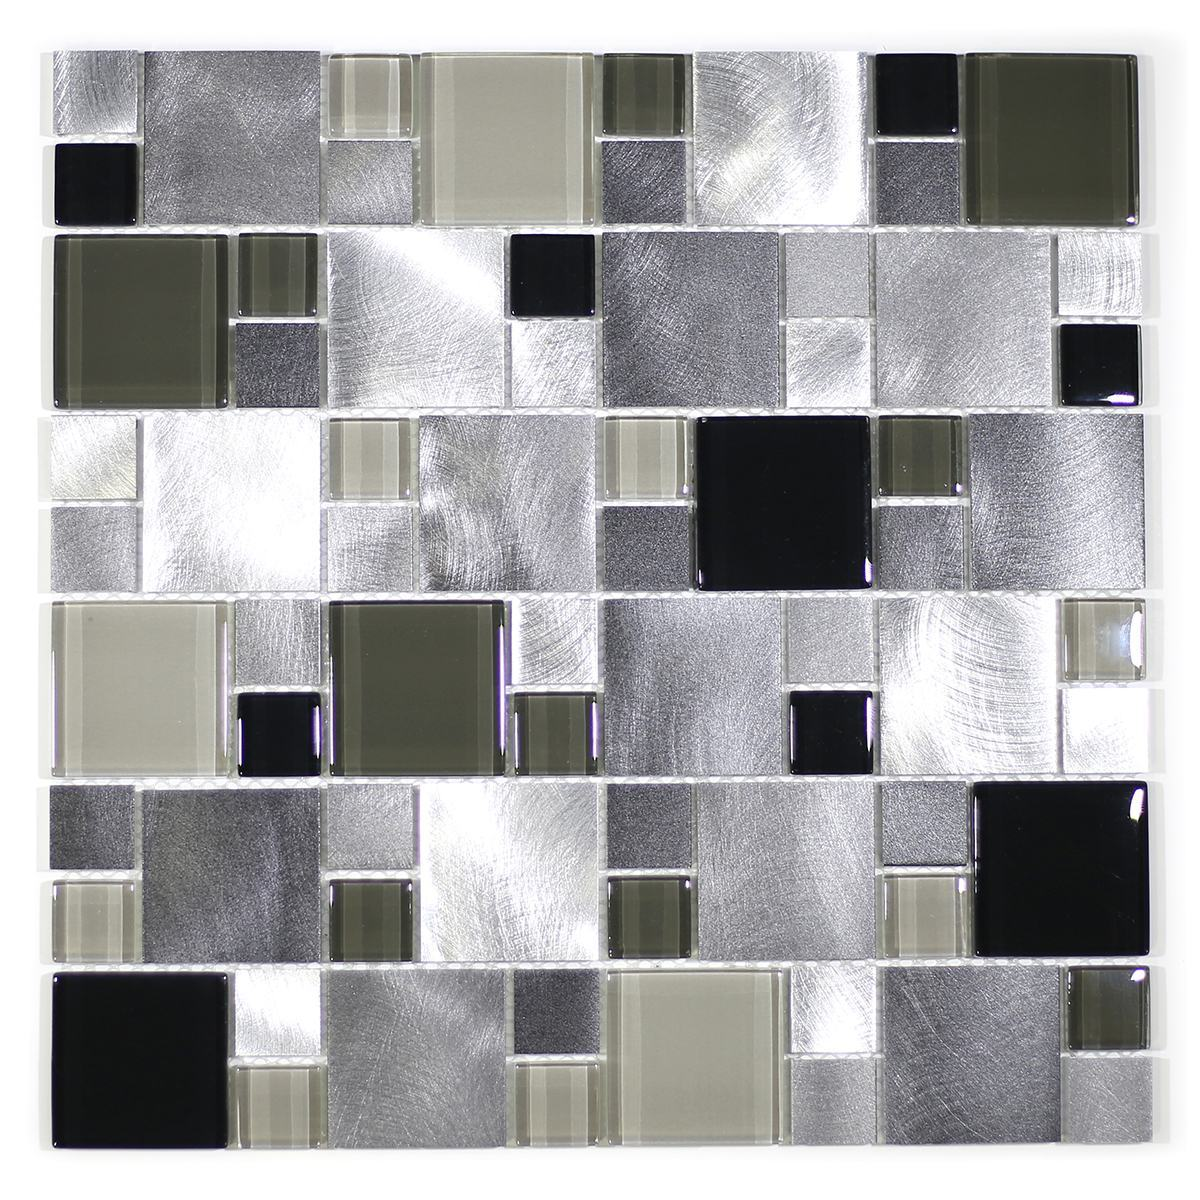 MA64-SM  RANDOM GLASS, STONE AND ALUMINUM COATING MOSAIC MIX